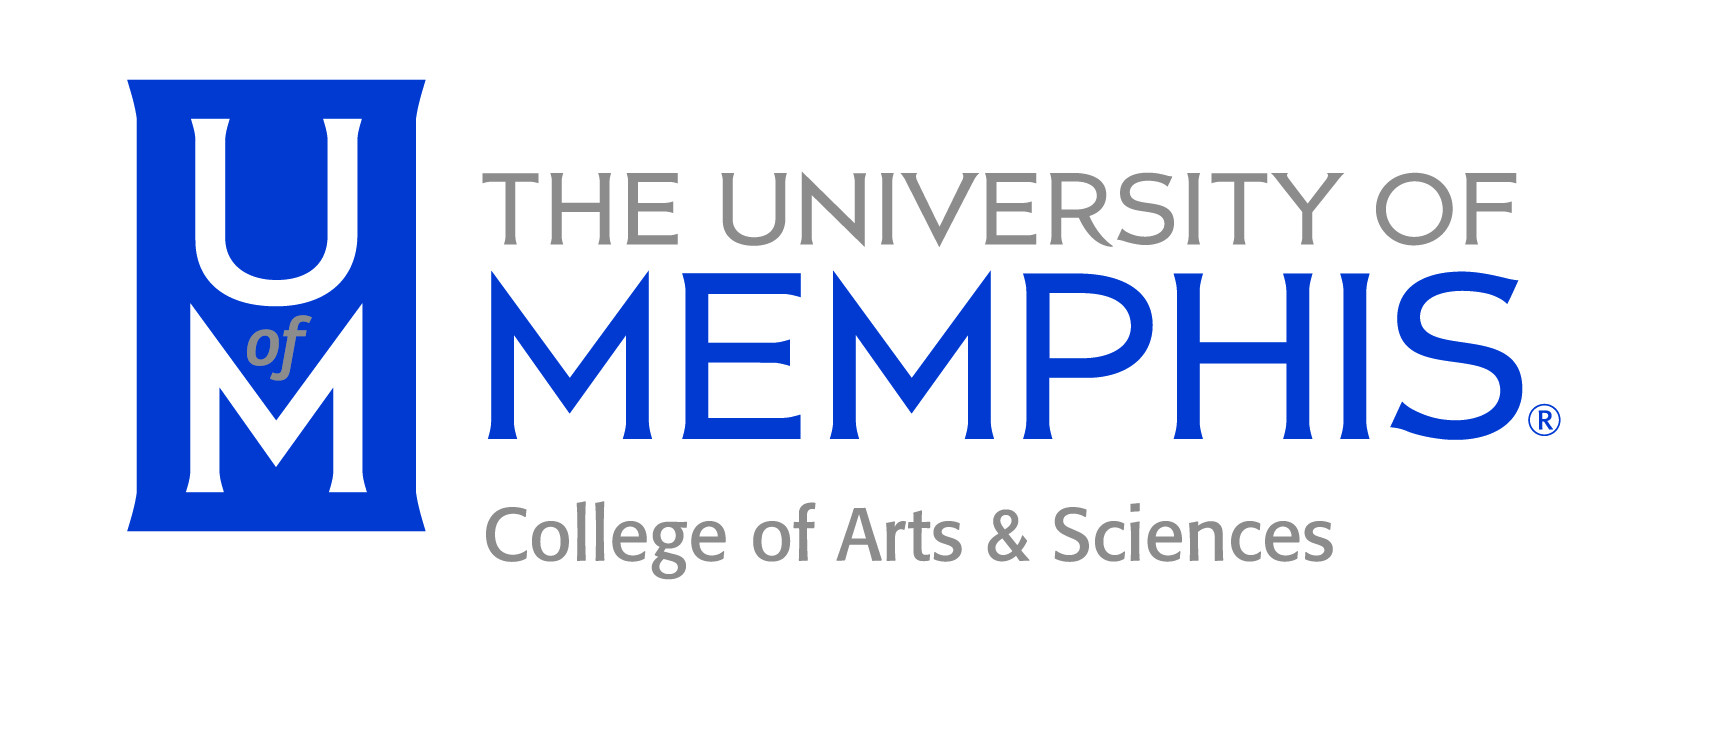 University of Memphis in partnership with Freeman Family Foundation